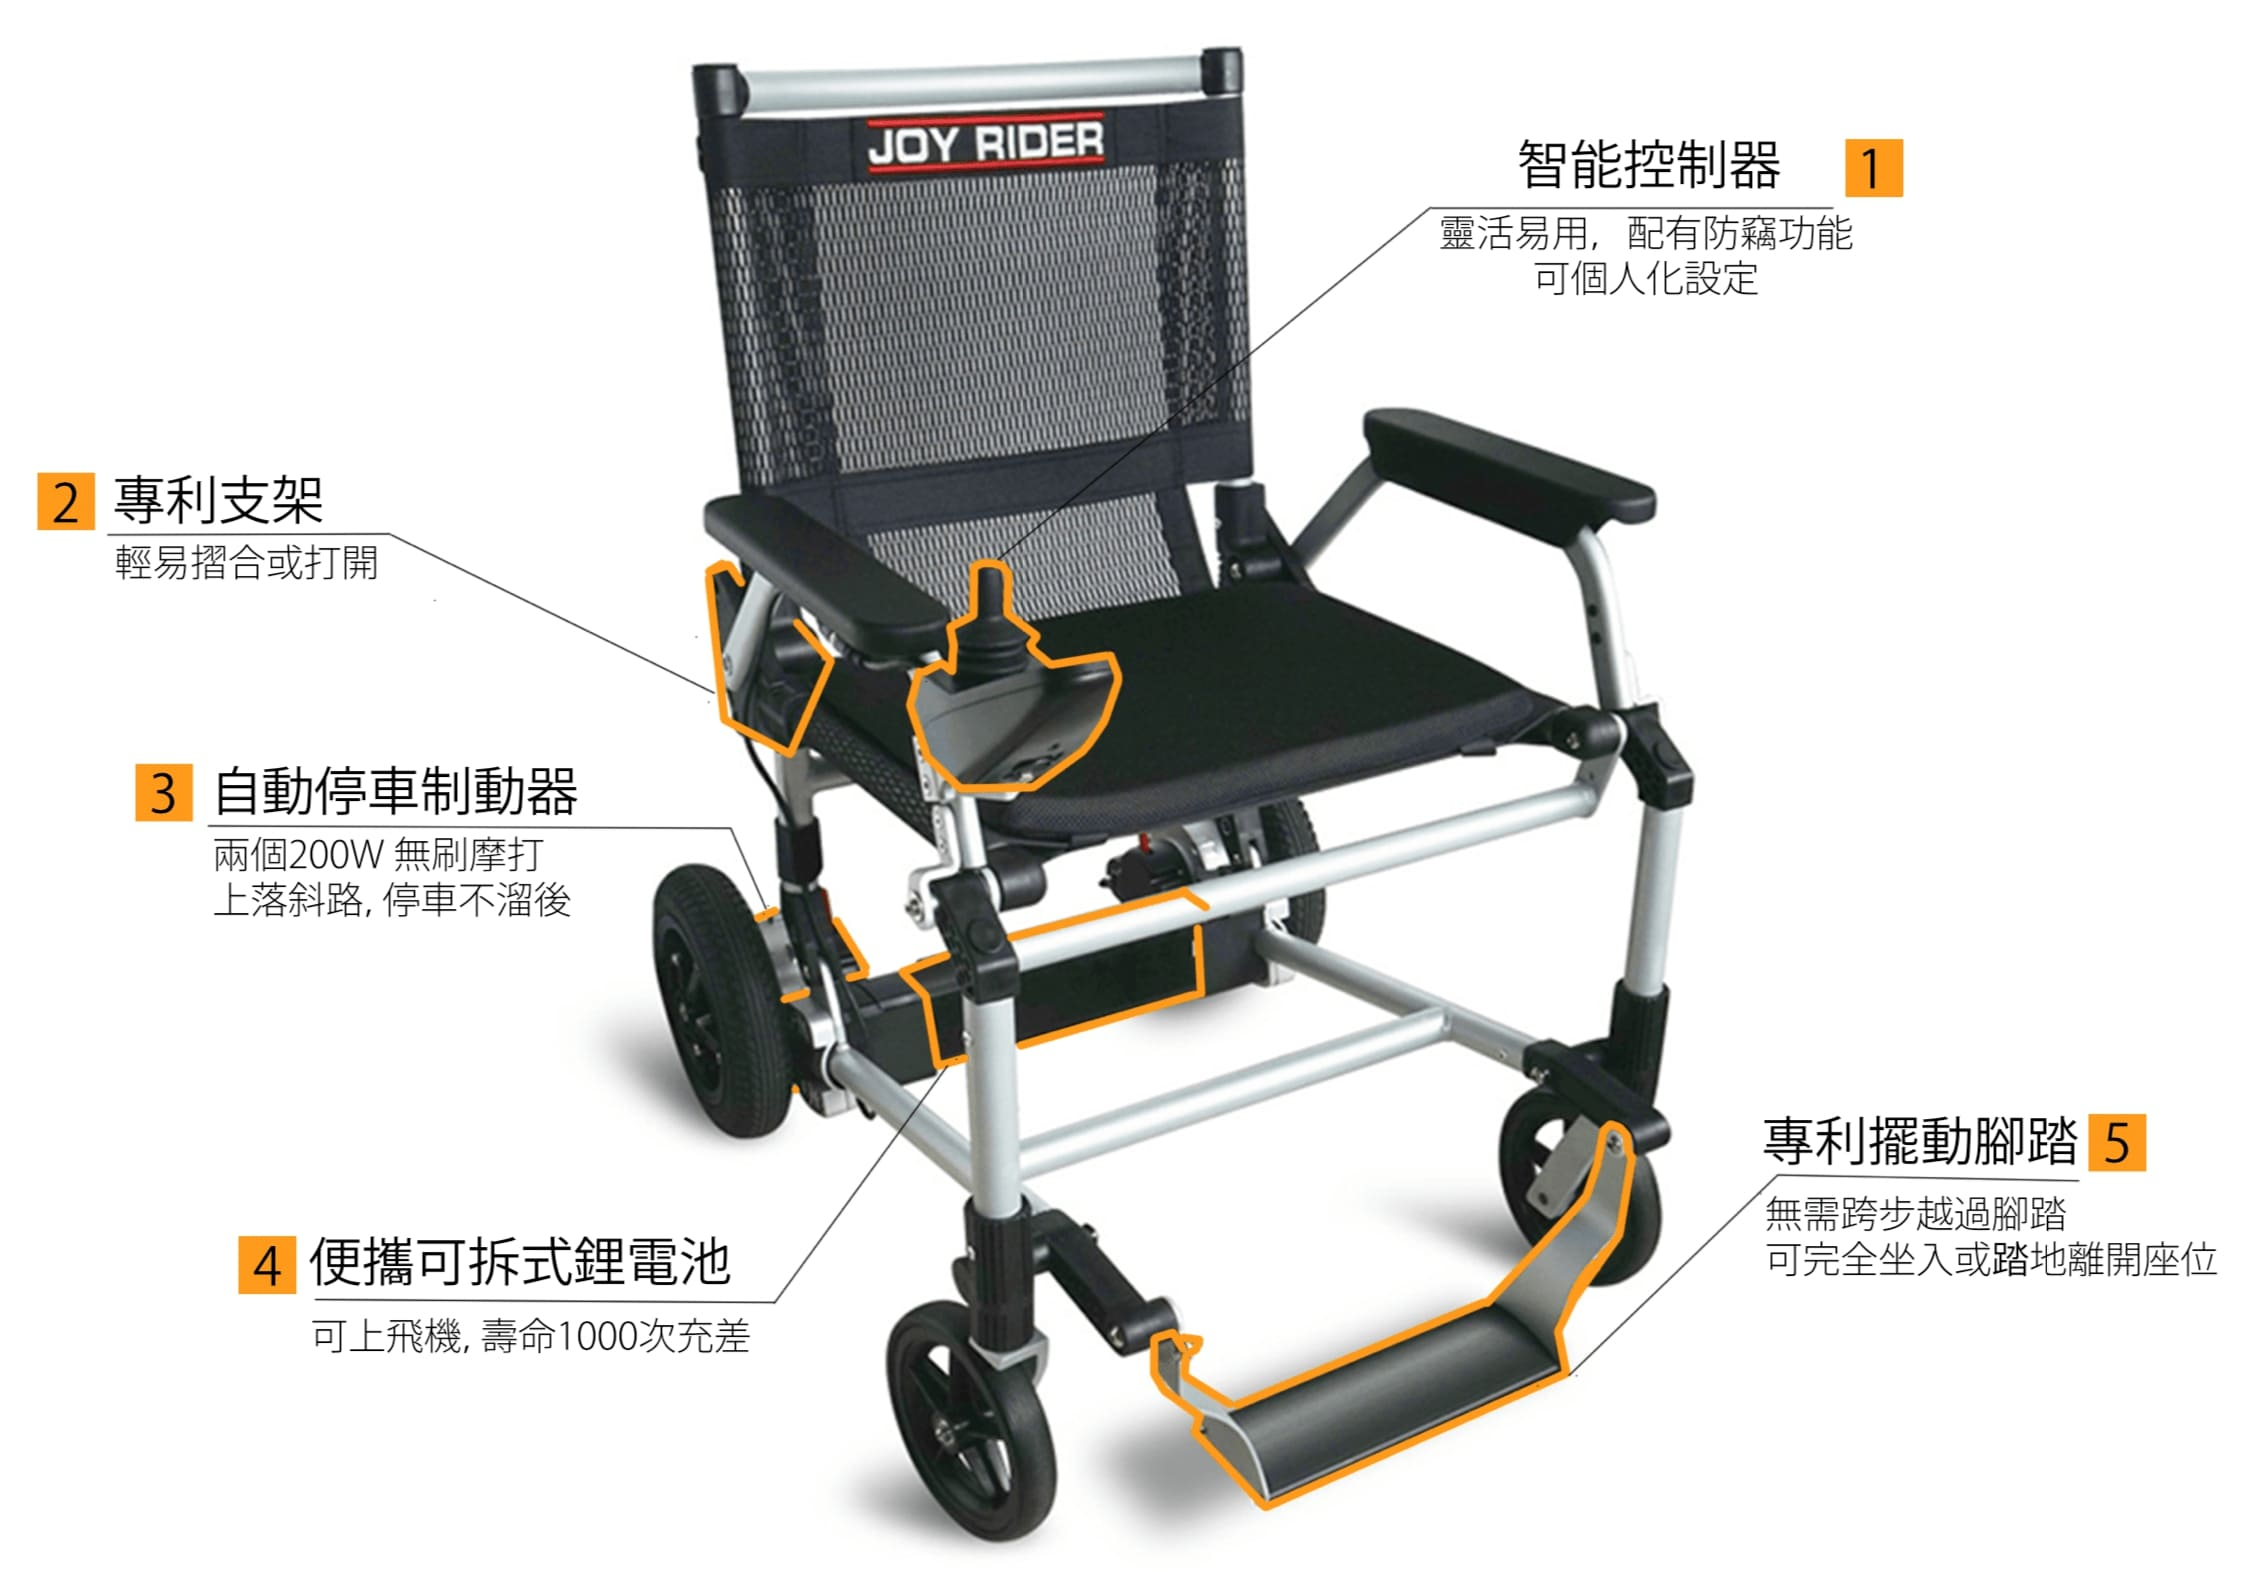 joy rider wheelchair 電動輪椅